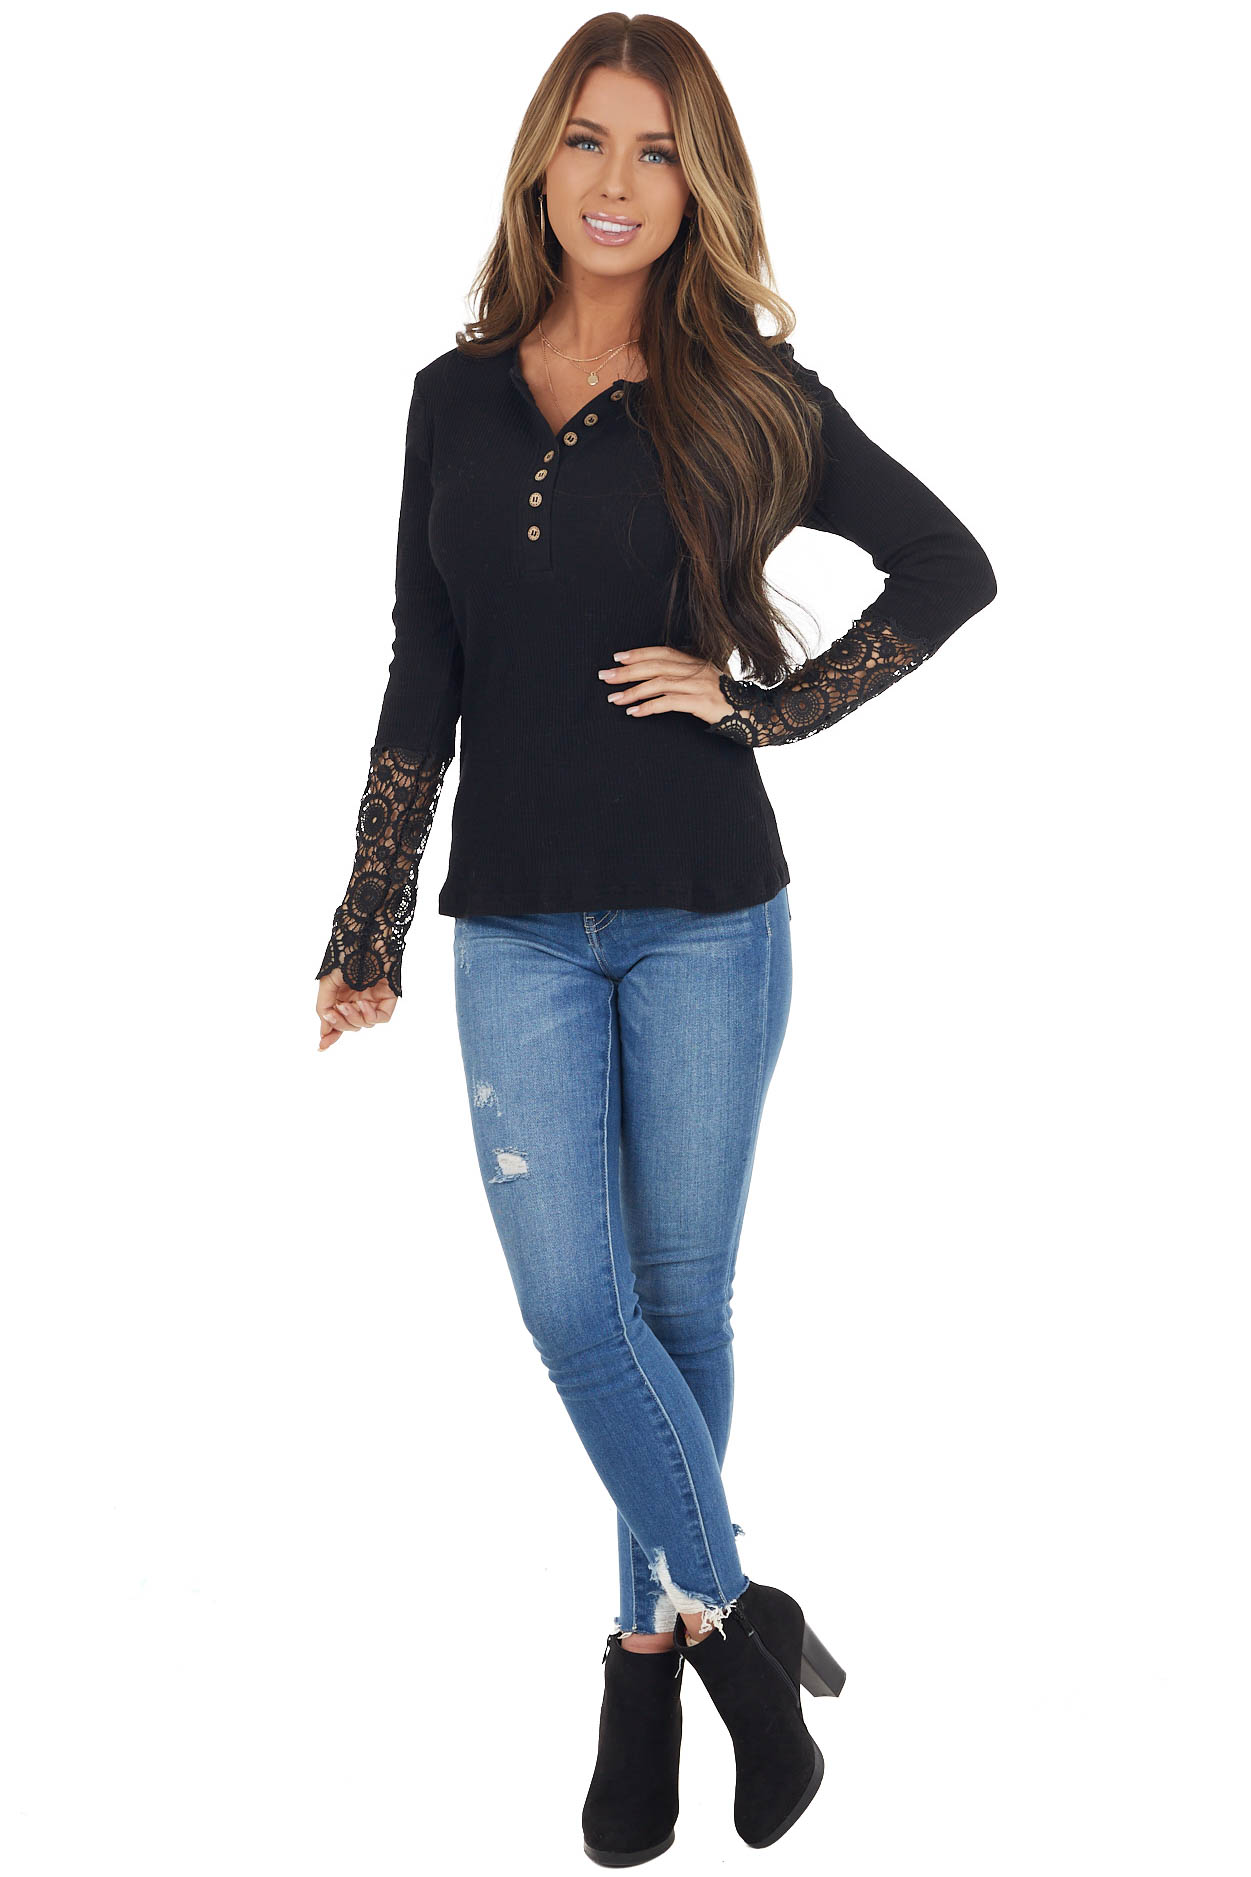 Black Ribbed Knit Henley Top with Crochet Lace Cuffs